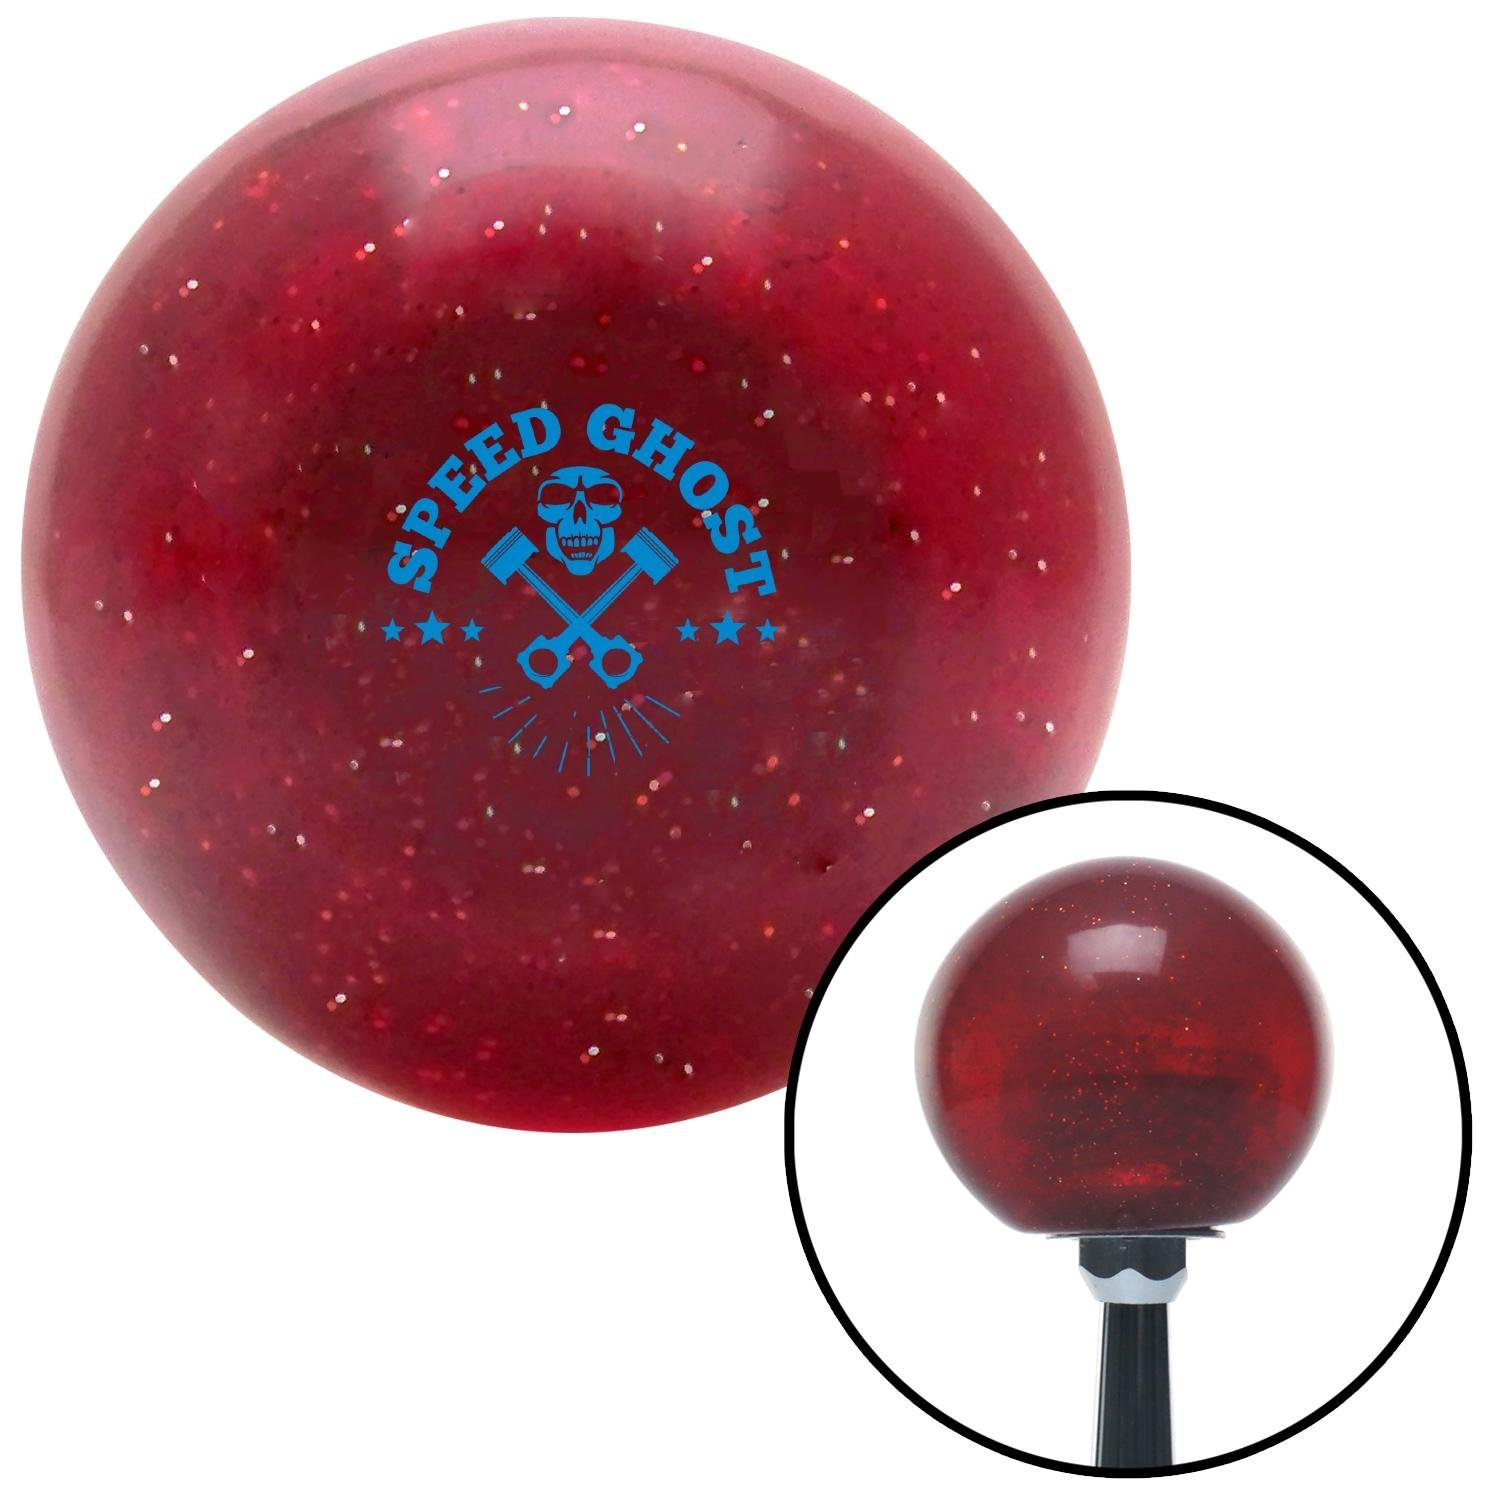 American Shifter 282530 Shift Knob Company Blue Speed Ghost Red Metal Flake with M16 x 1.5 Insert